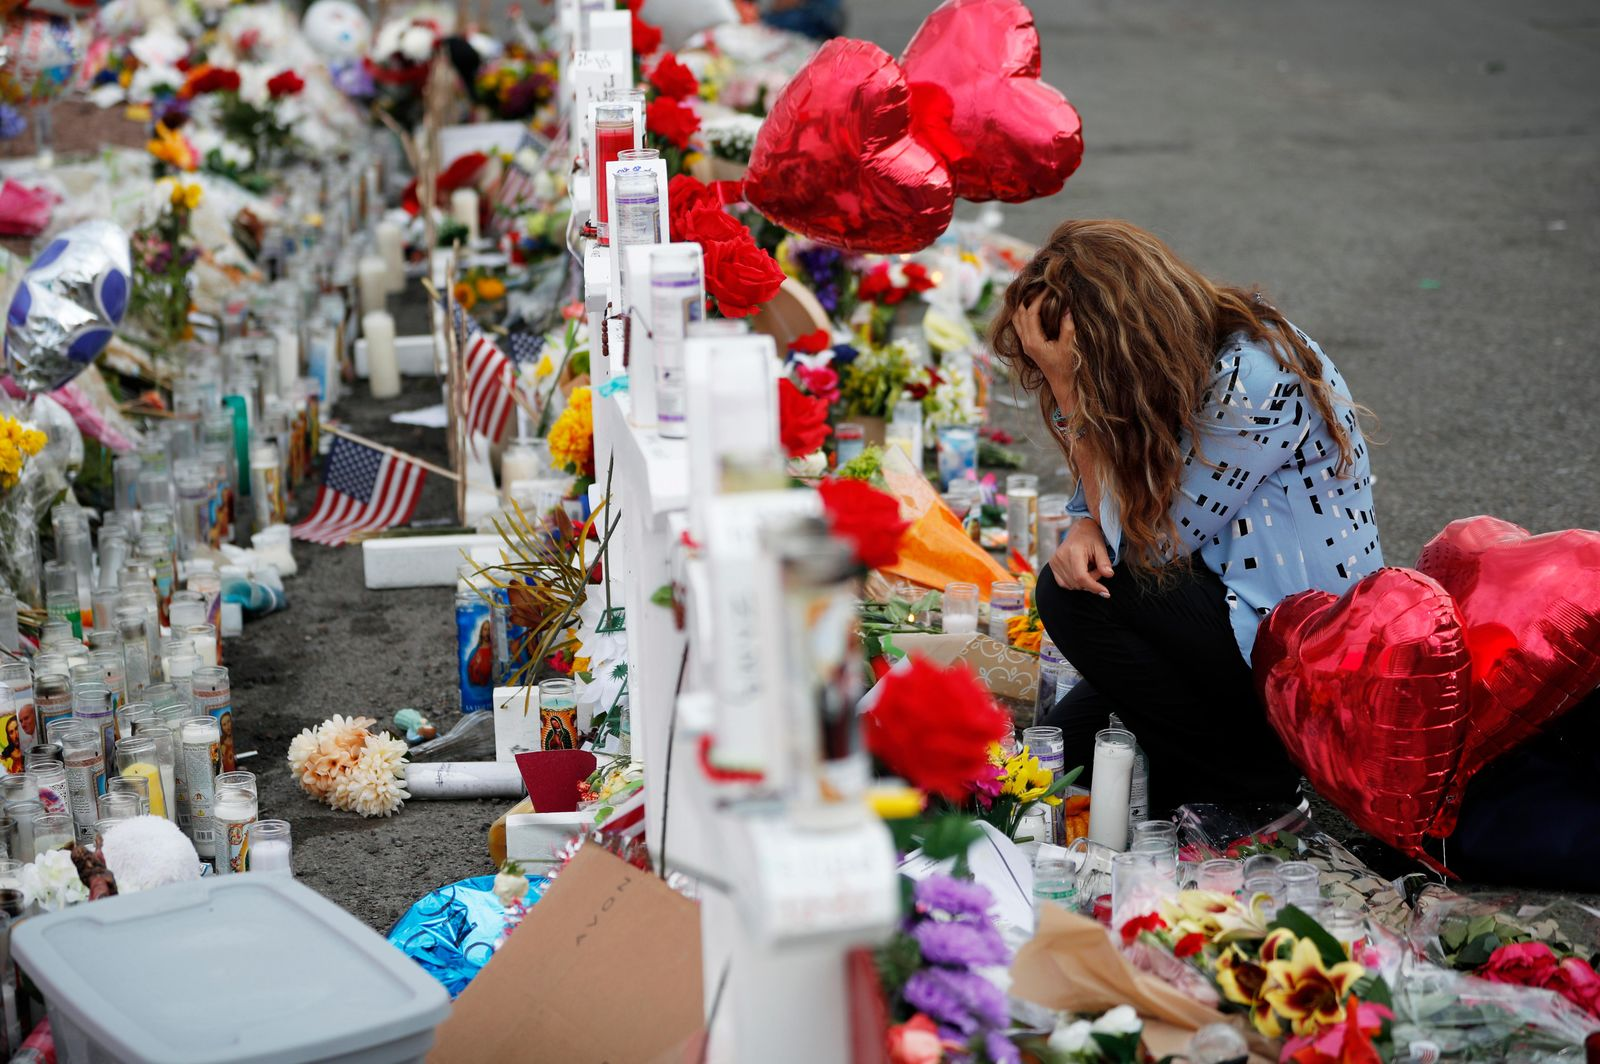 Gloria Garces kneels in front of crosses at a makeshift memorial near the scene of a mass shooting at a shopping complex Tuesday, Aug. 6, 2019, in El Paso, Texas. (AP Photo/John Locher)